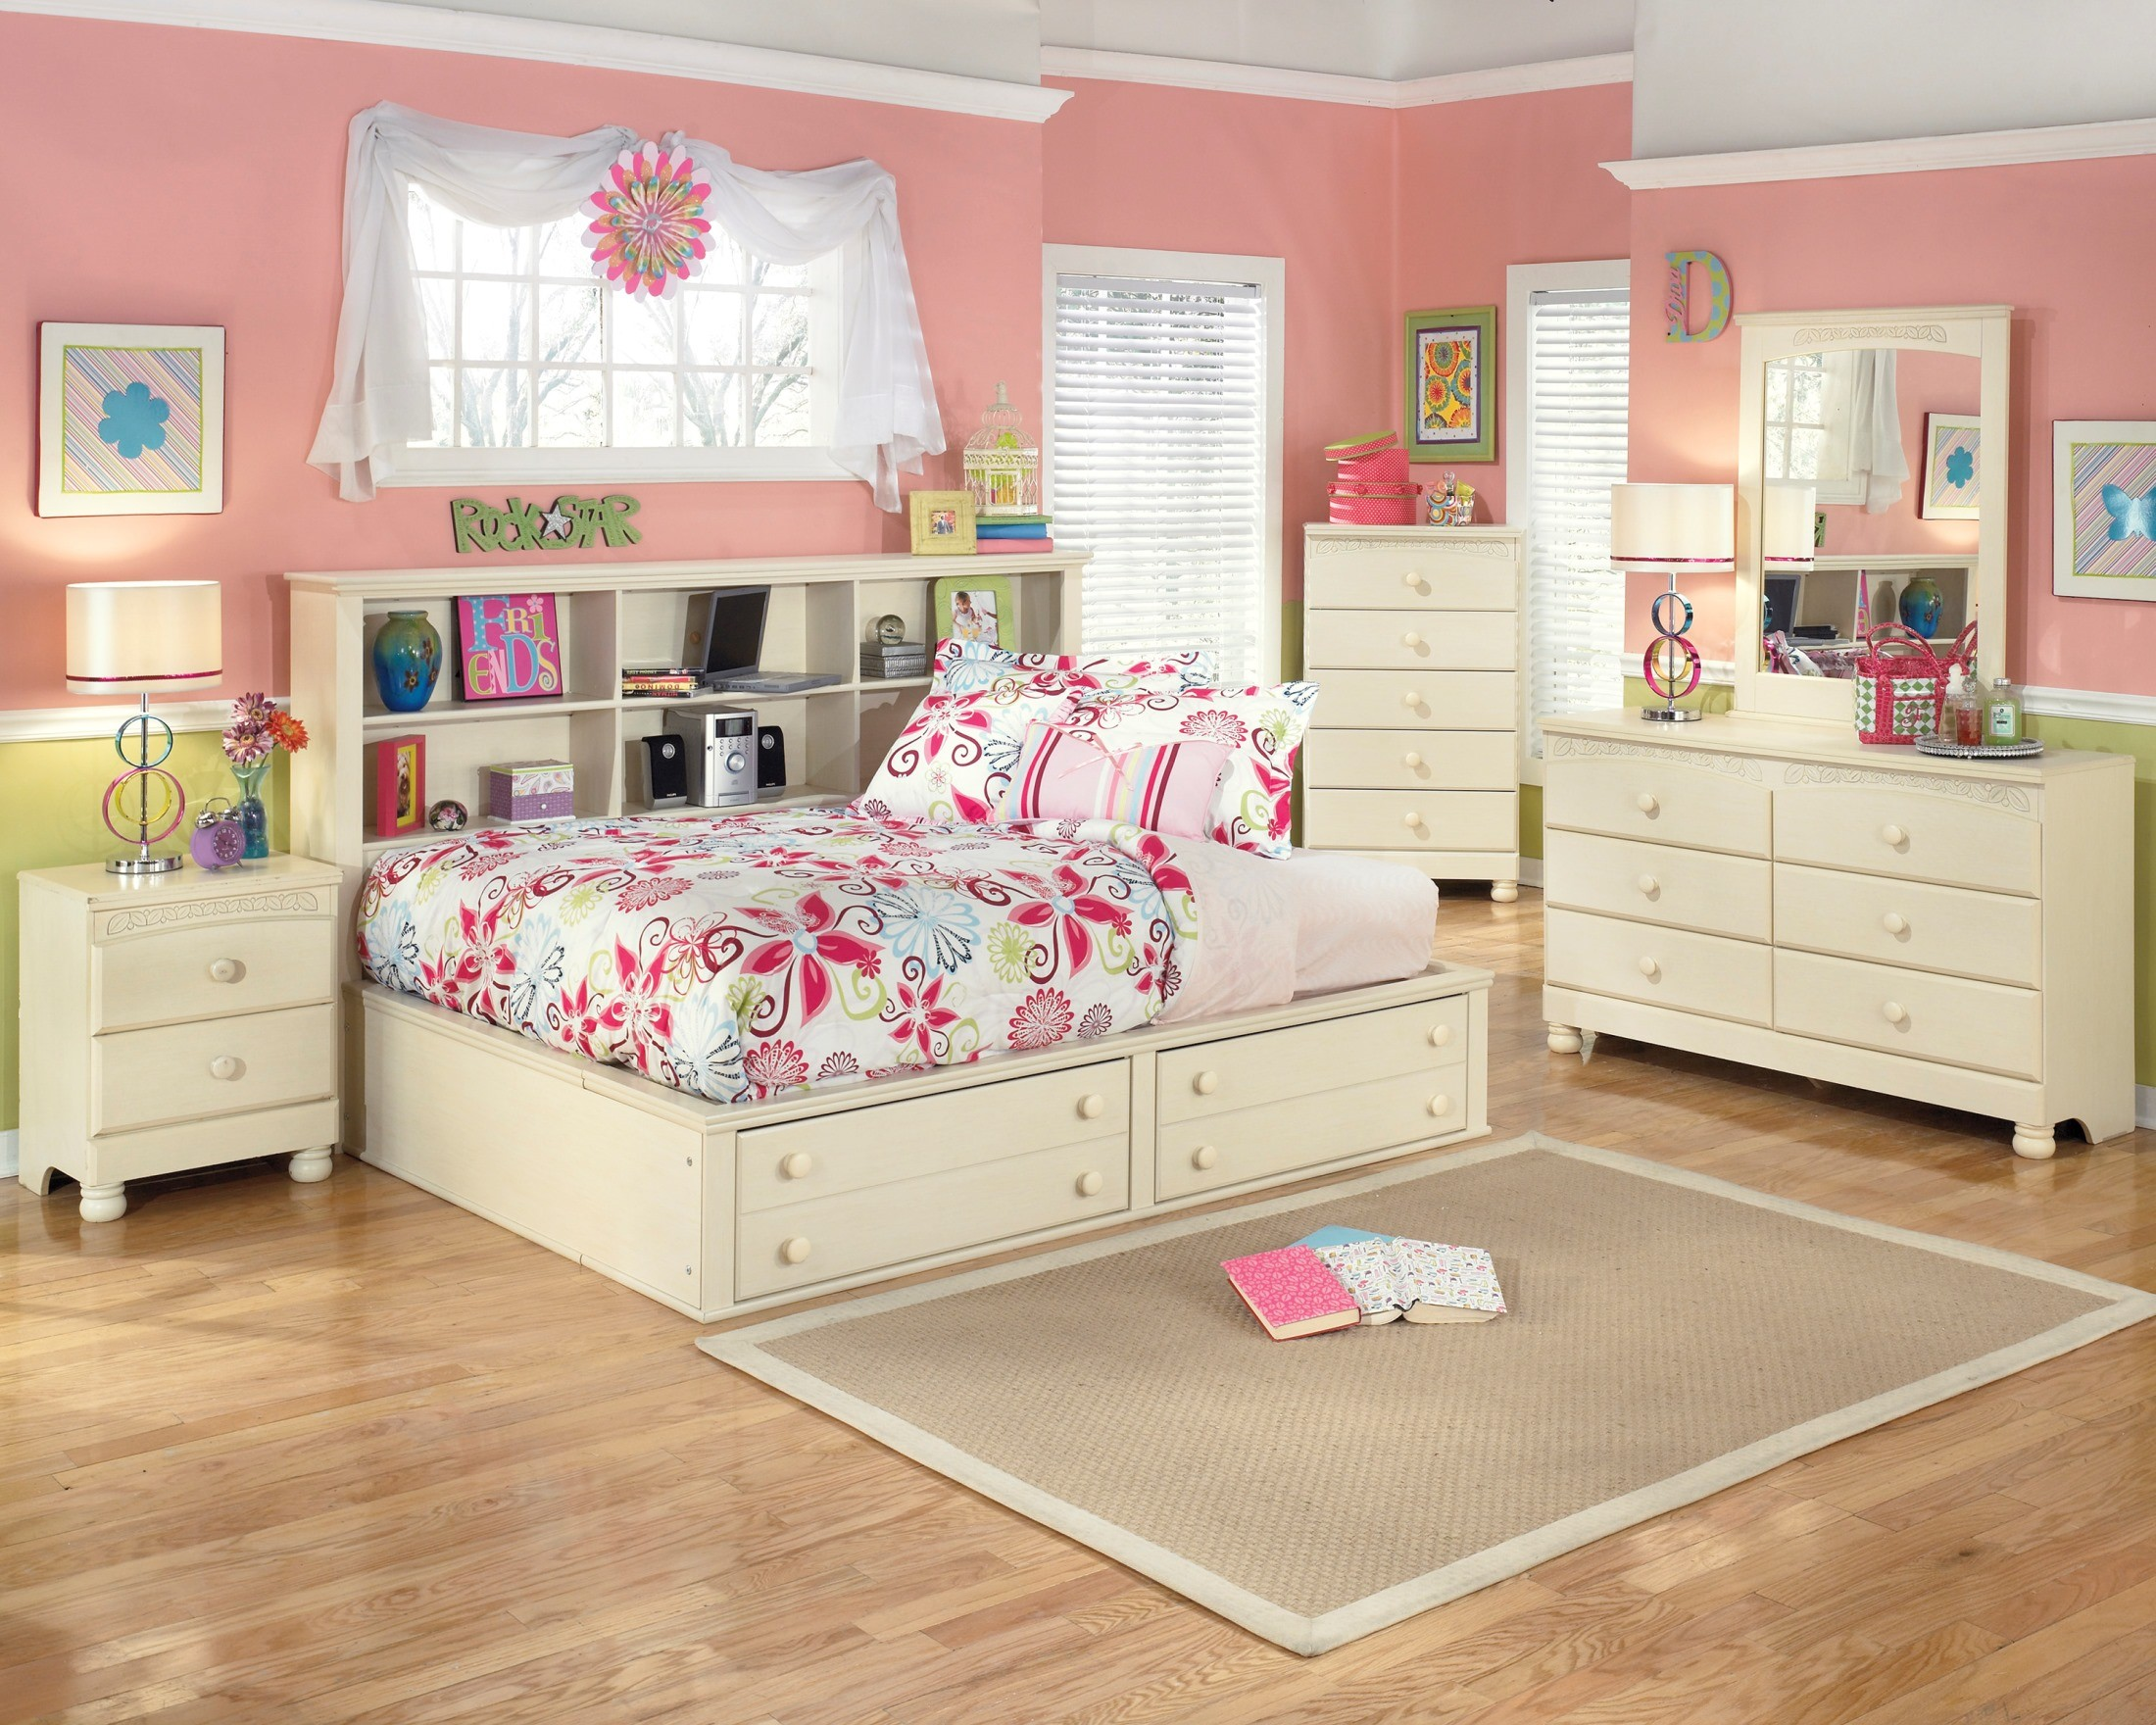 Cottage Retreat Youth Bedside Storage Bedroom Set from